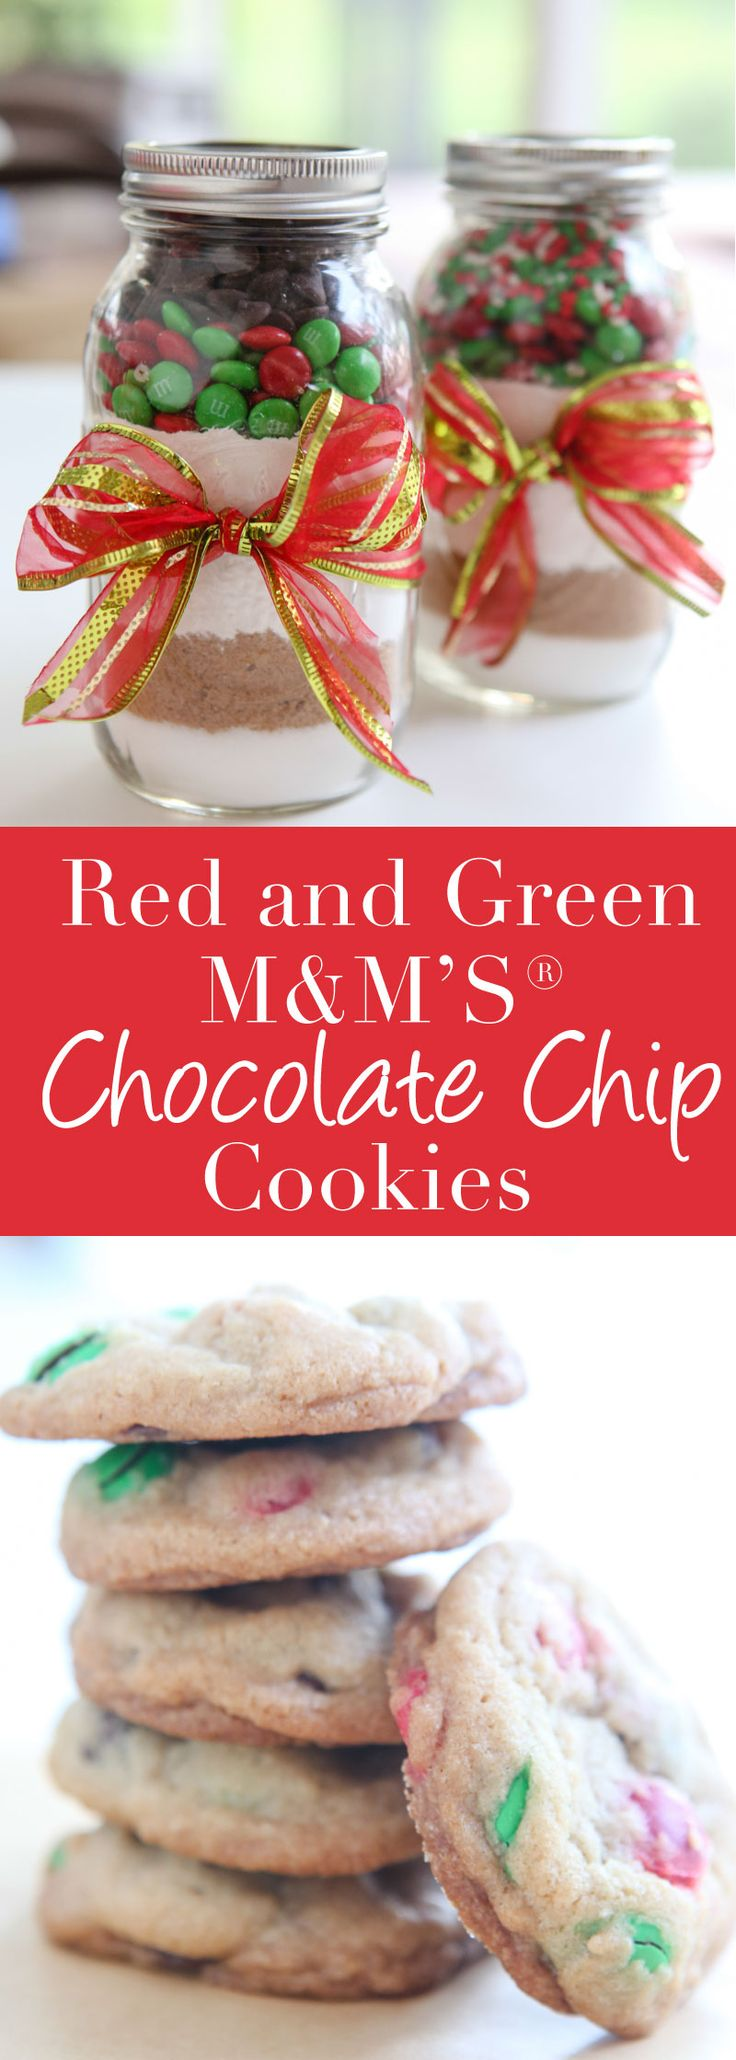 {Gift Idea} M&M'S®️️ Chocolate Chip Cookie Jar Mix and Free Printables #printables #gift #holiday #christmas #cookies #SimplySweetness #CollectiveBias #ad